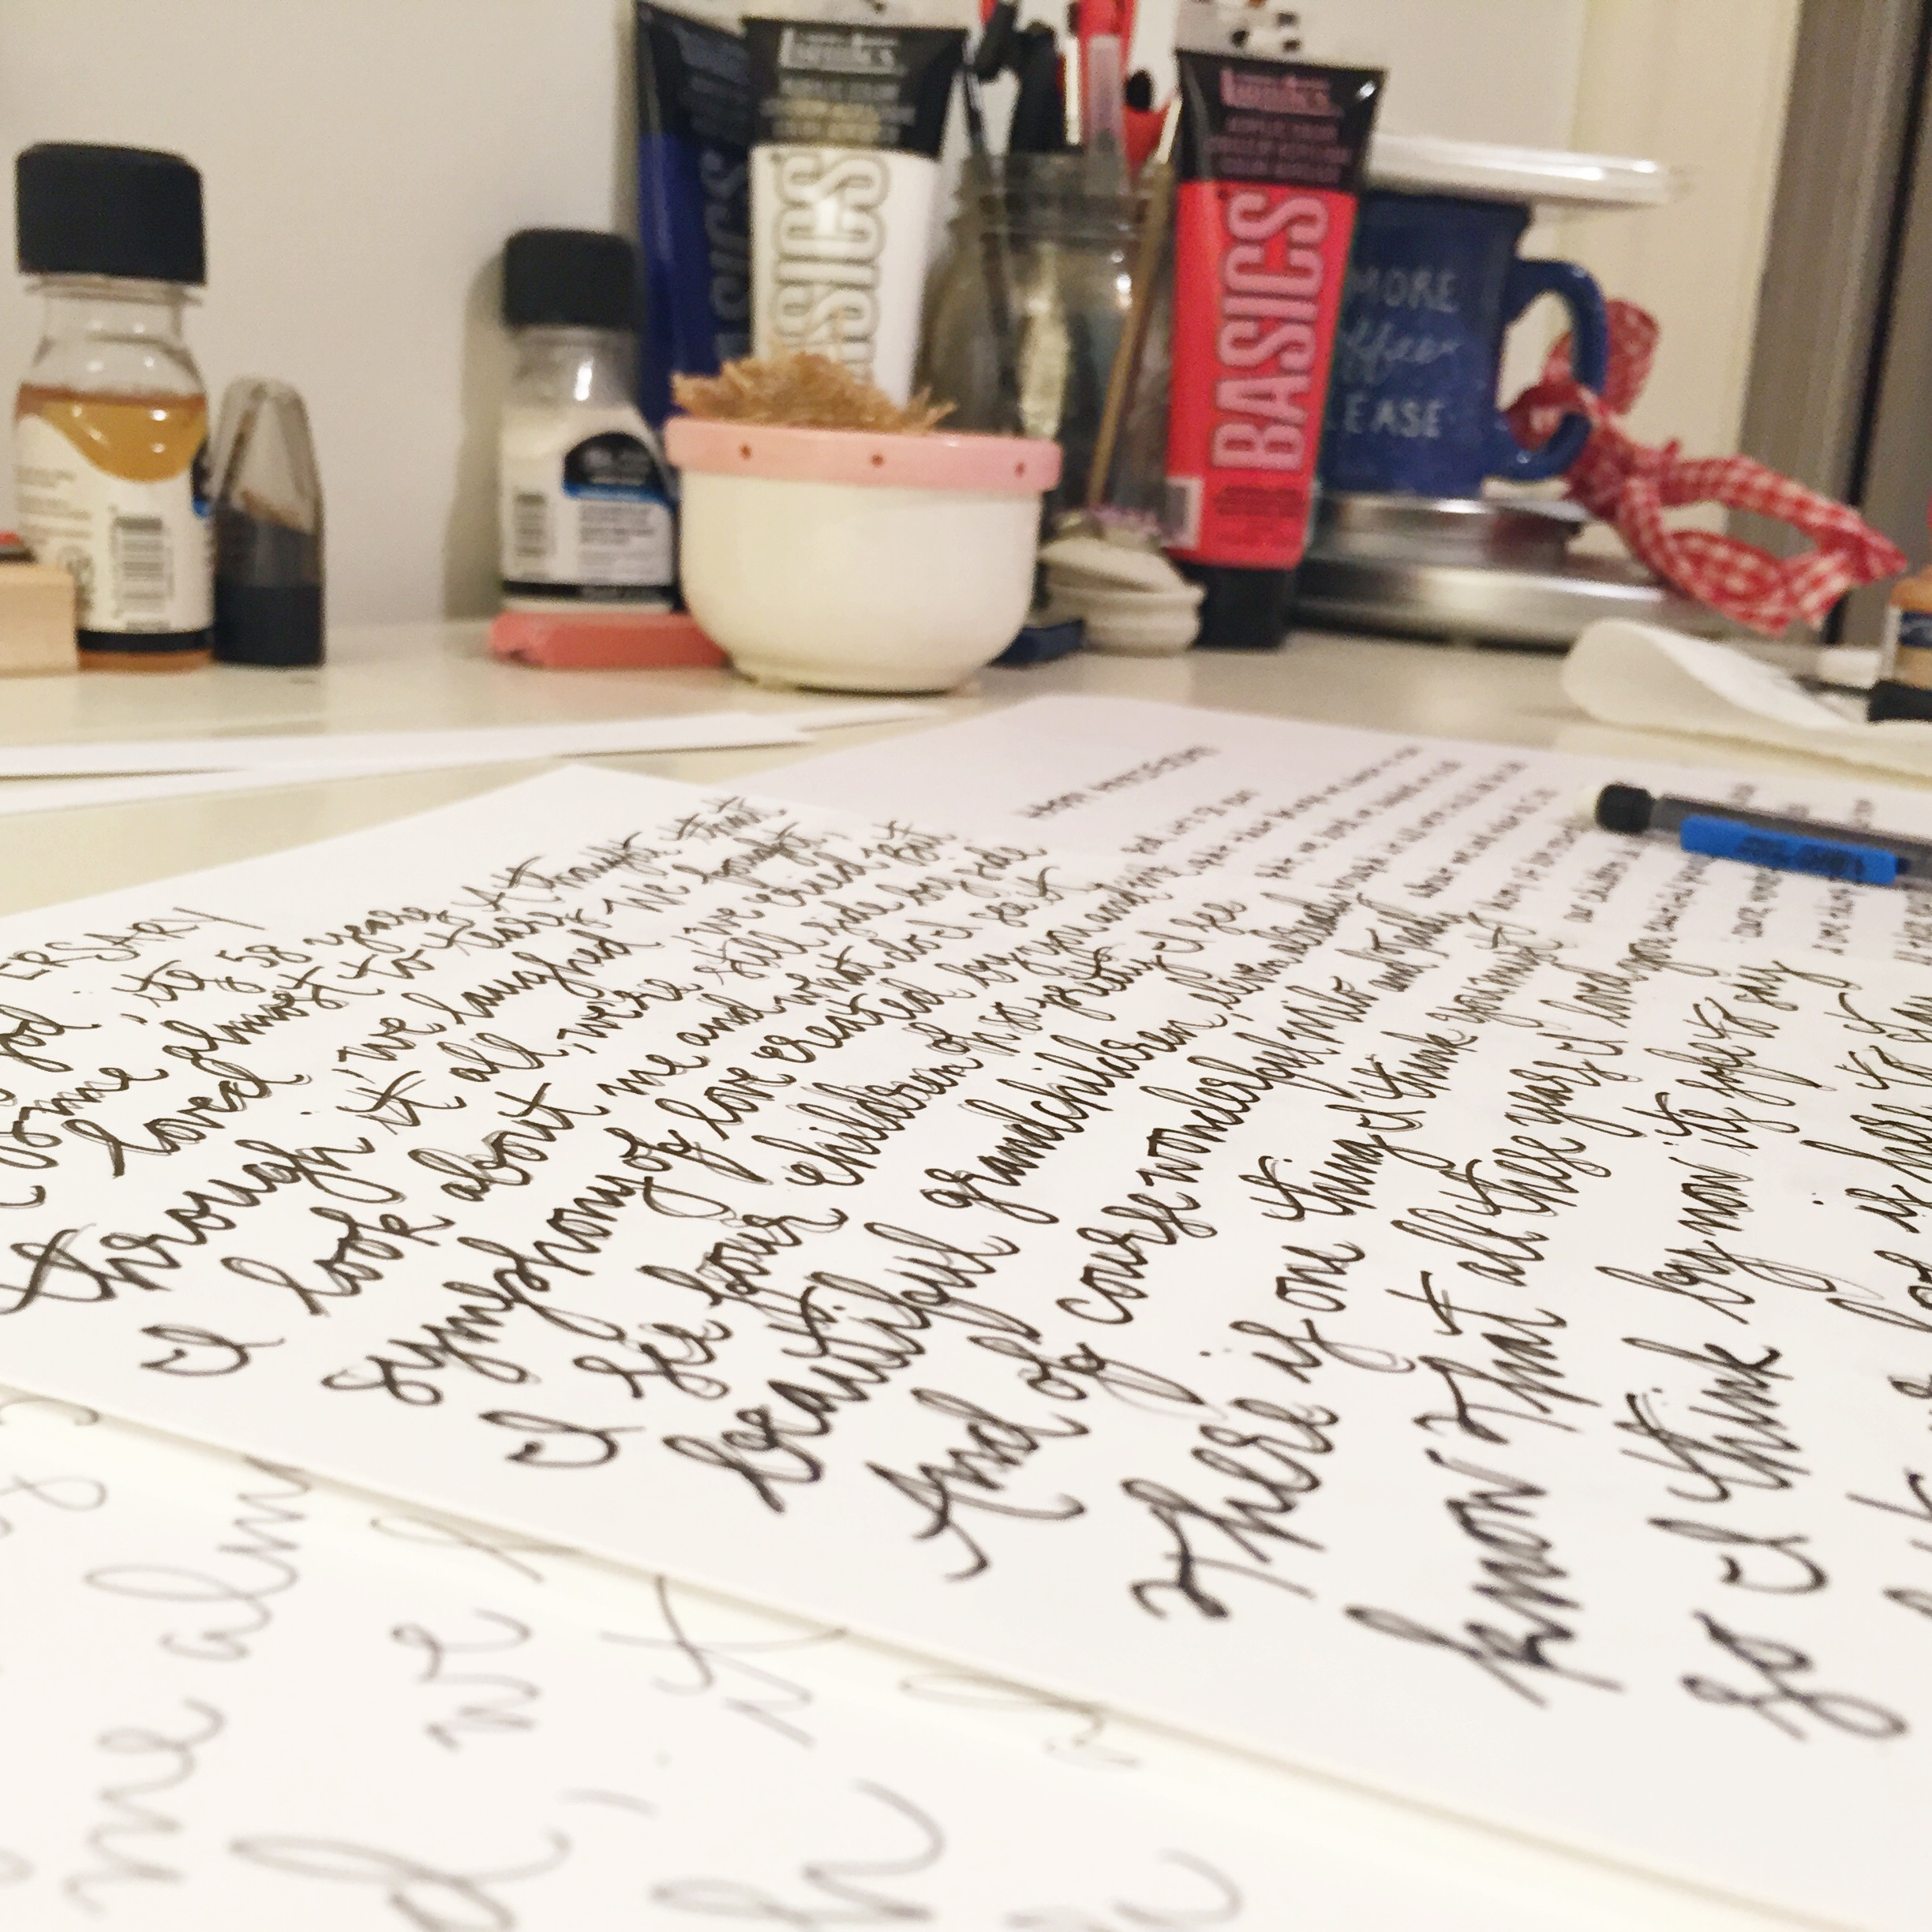 Laying out the whimsical version of the Happy Anniversary poem.